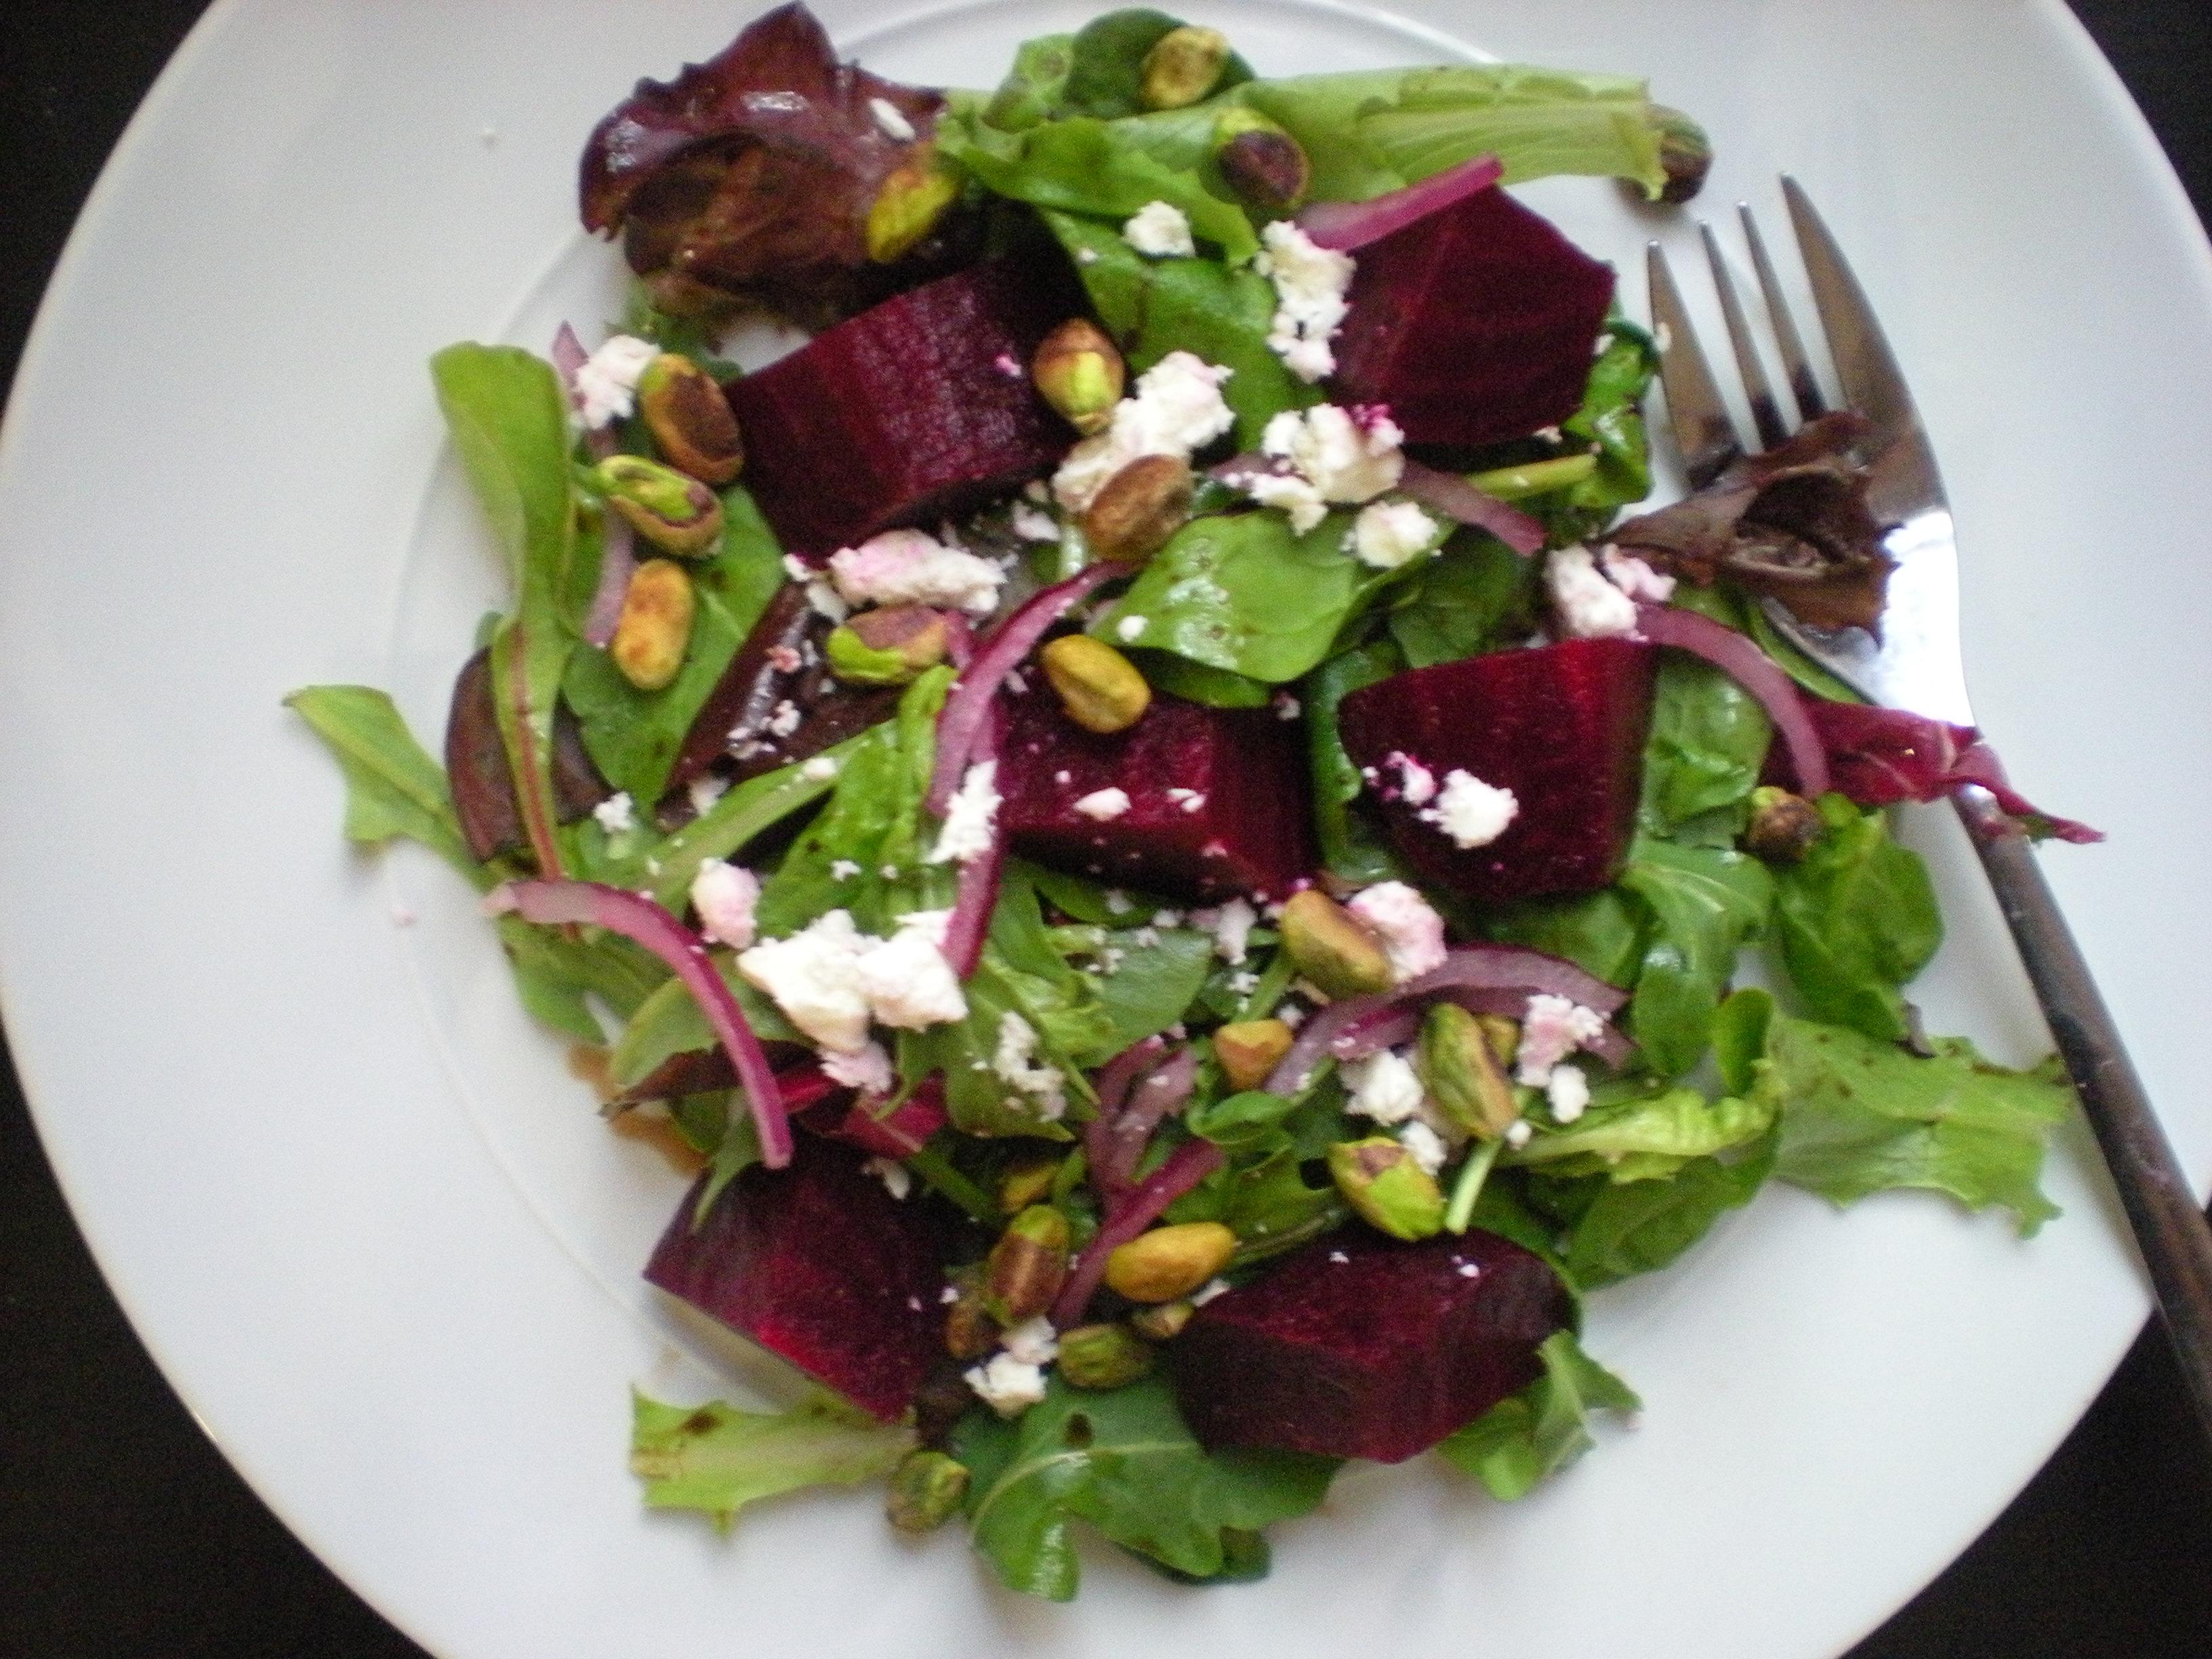 Balsamic Roasted Beet Salad with Pistachios and Feta | A Girl's Gotta ...